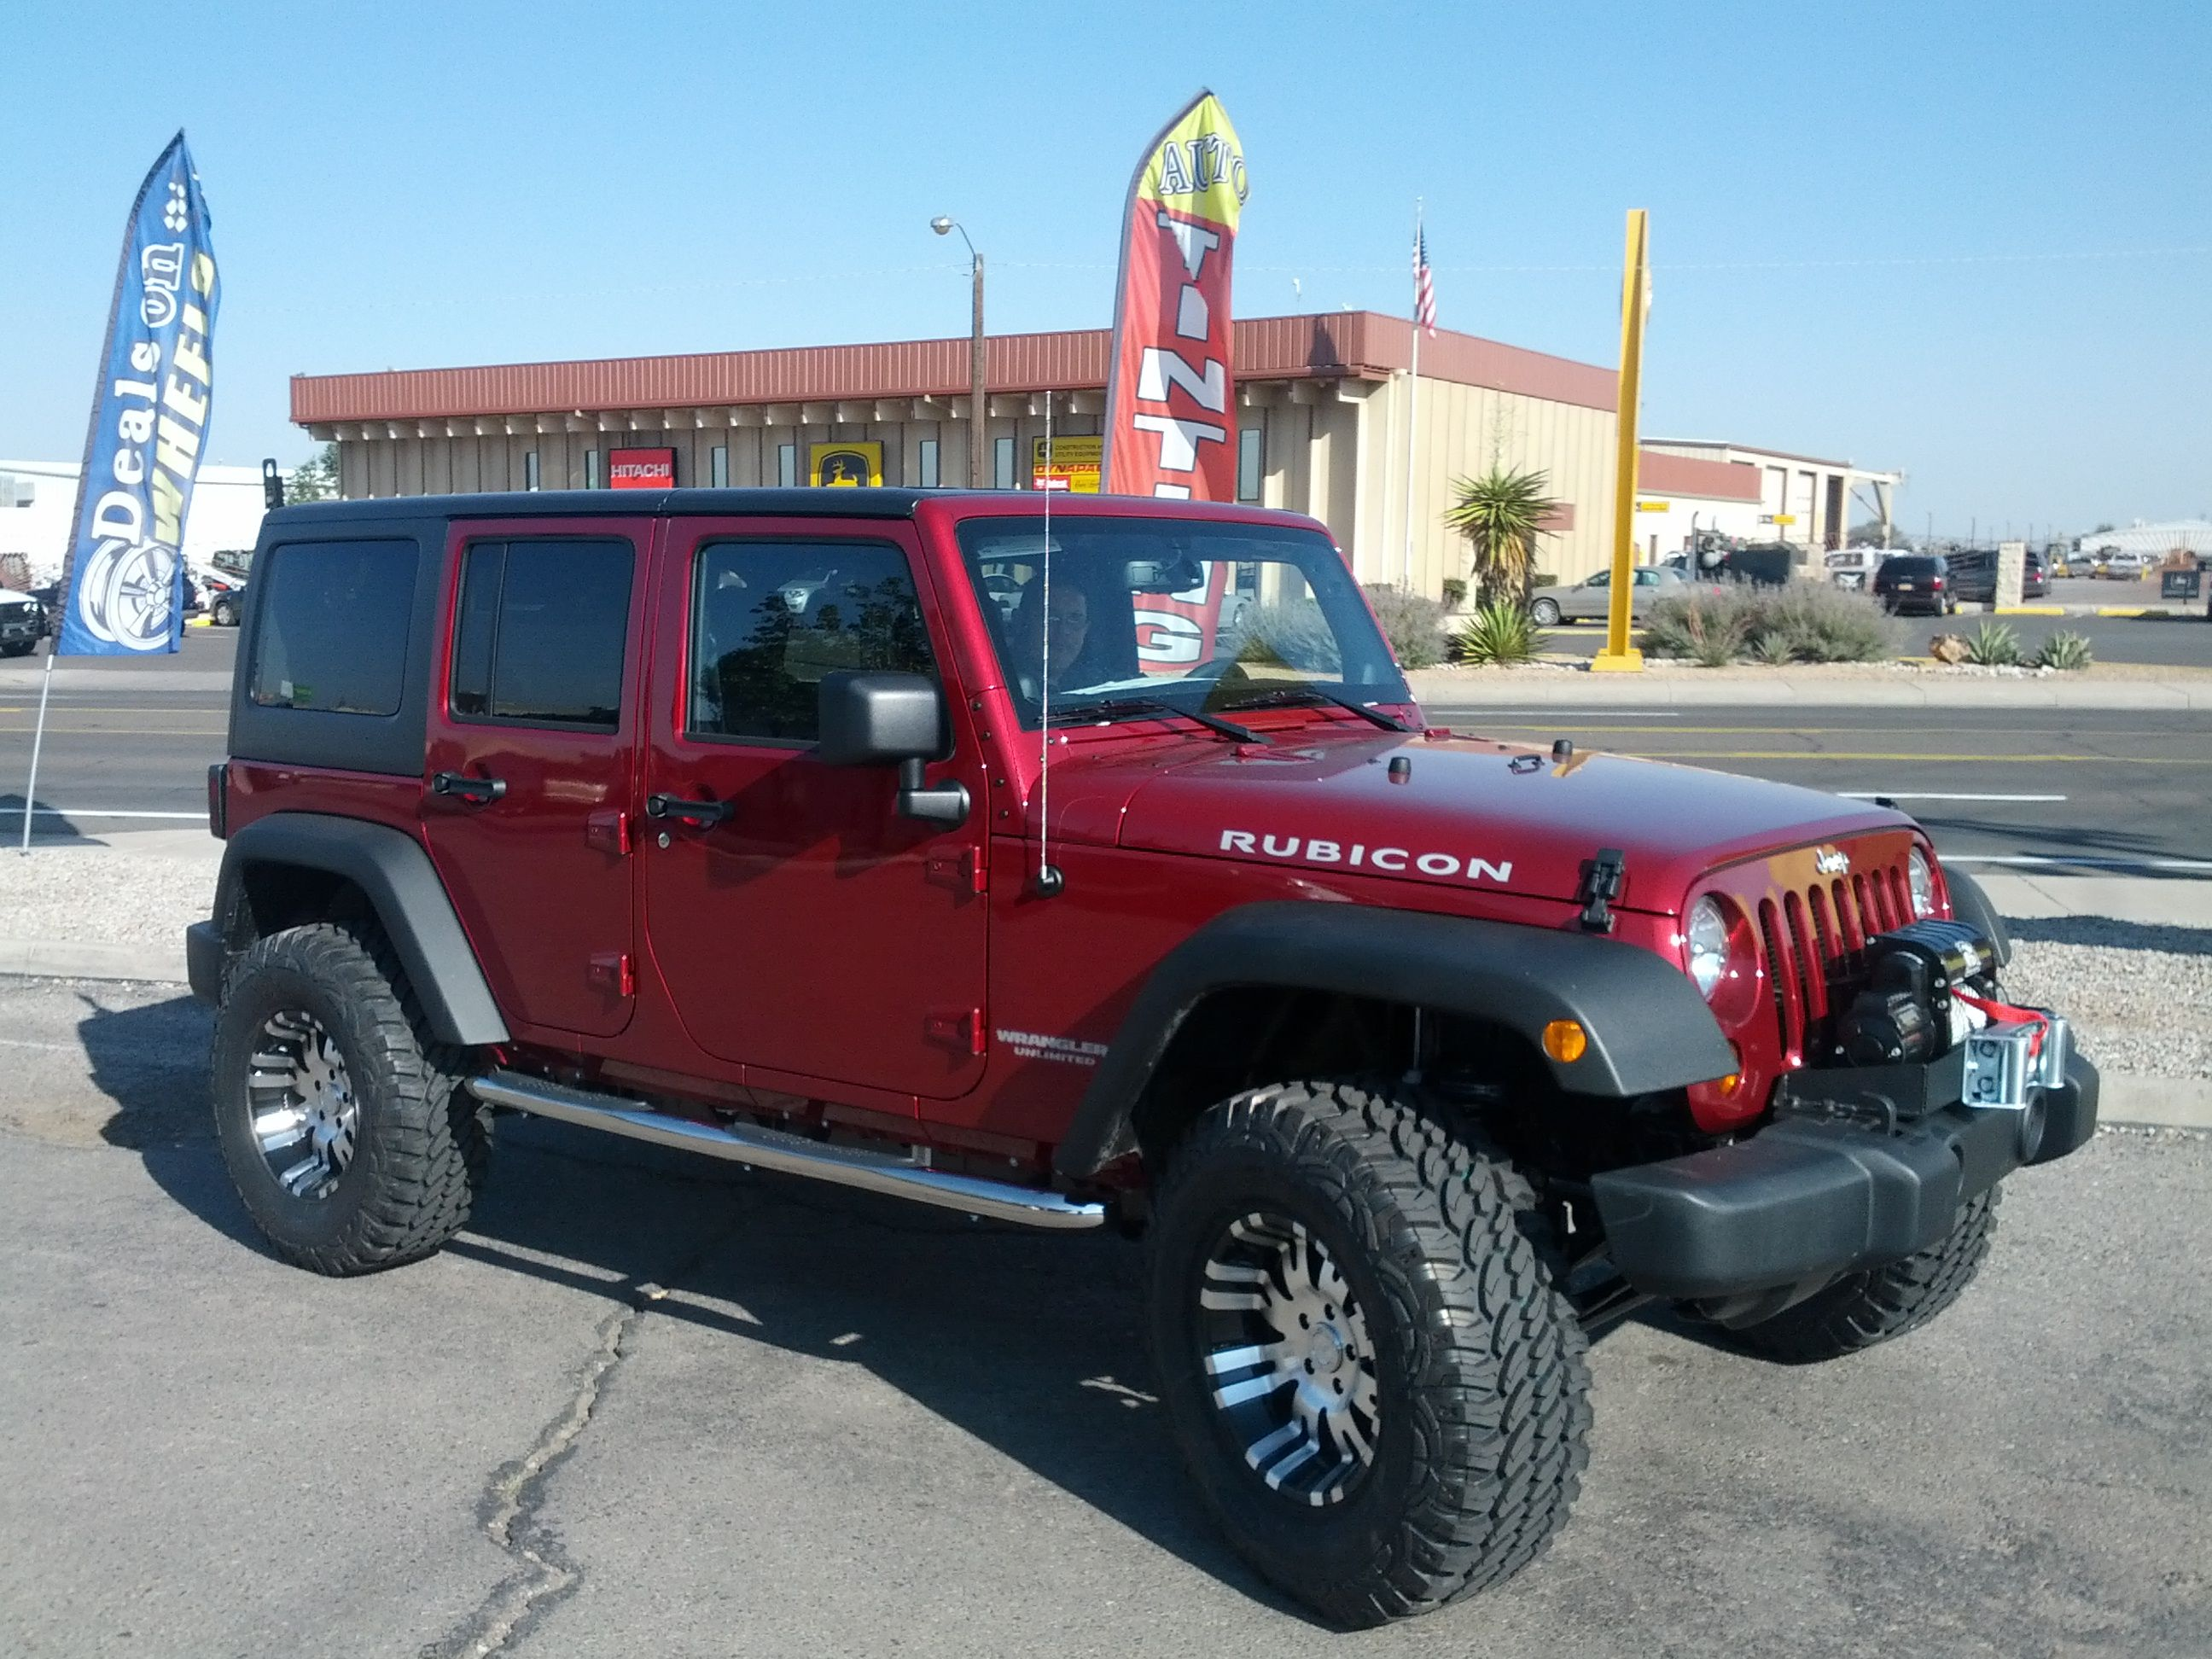 sahara neck detailed wrangler great unlimited l main jeep for sale used stock near inventory ny